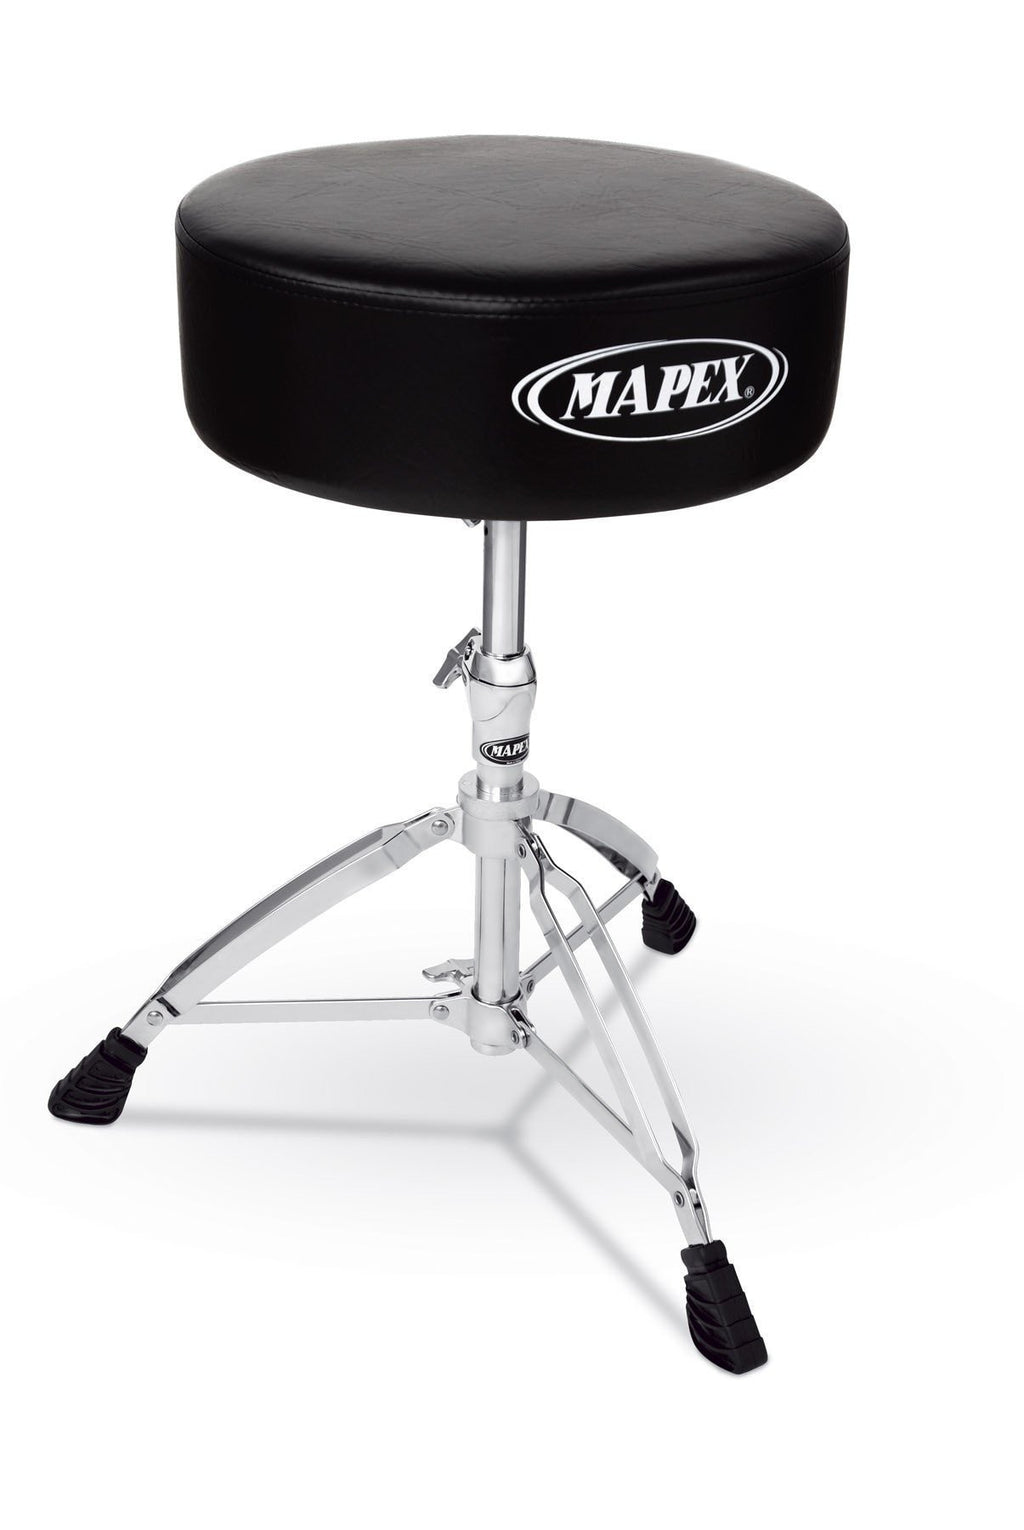 Mapex T570A Round Top Drum Throne Heavy Duty